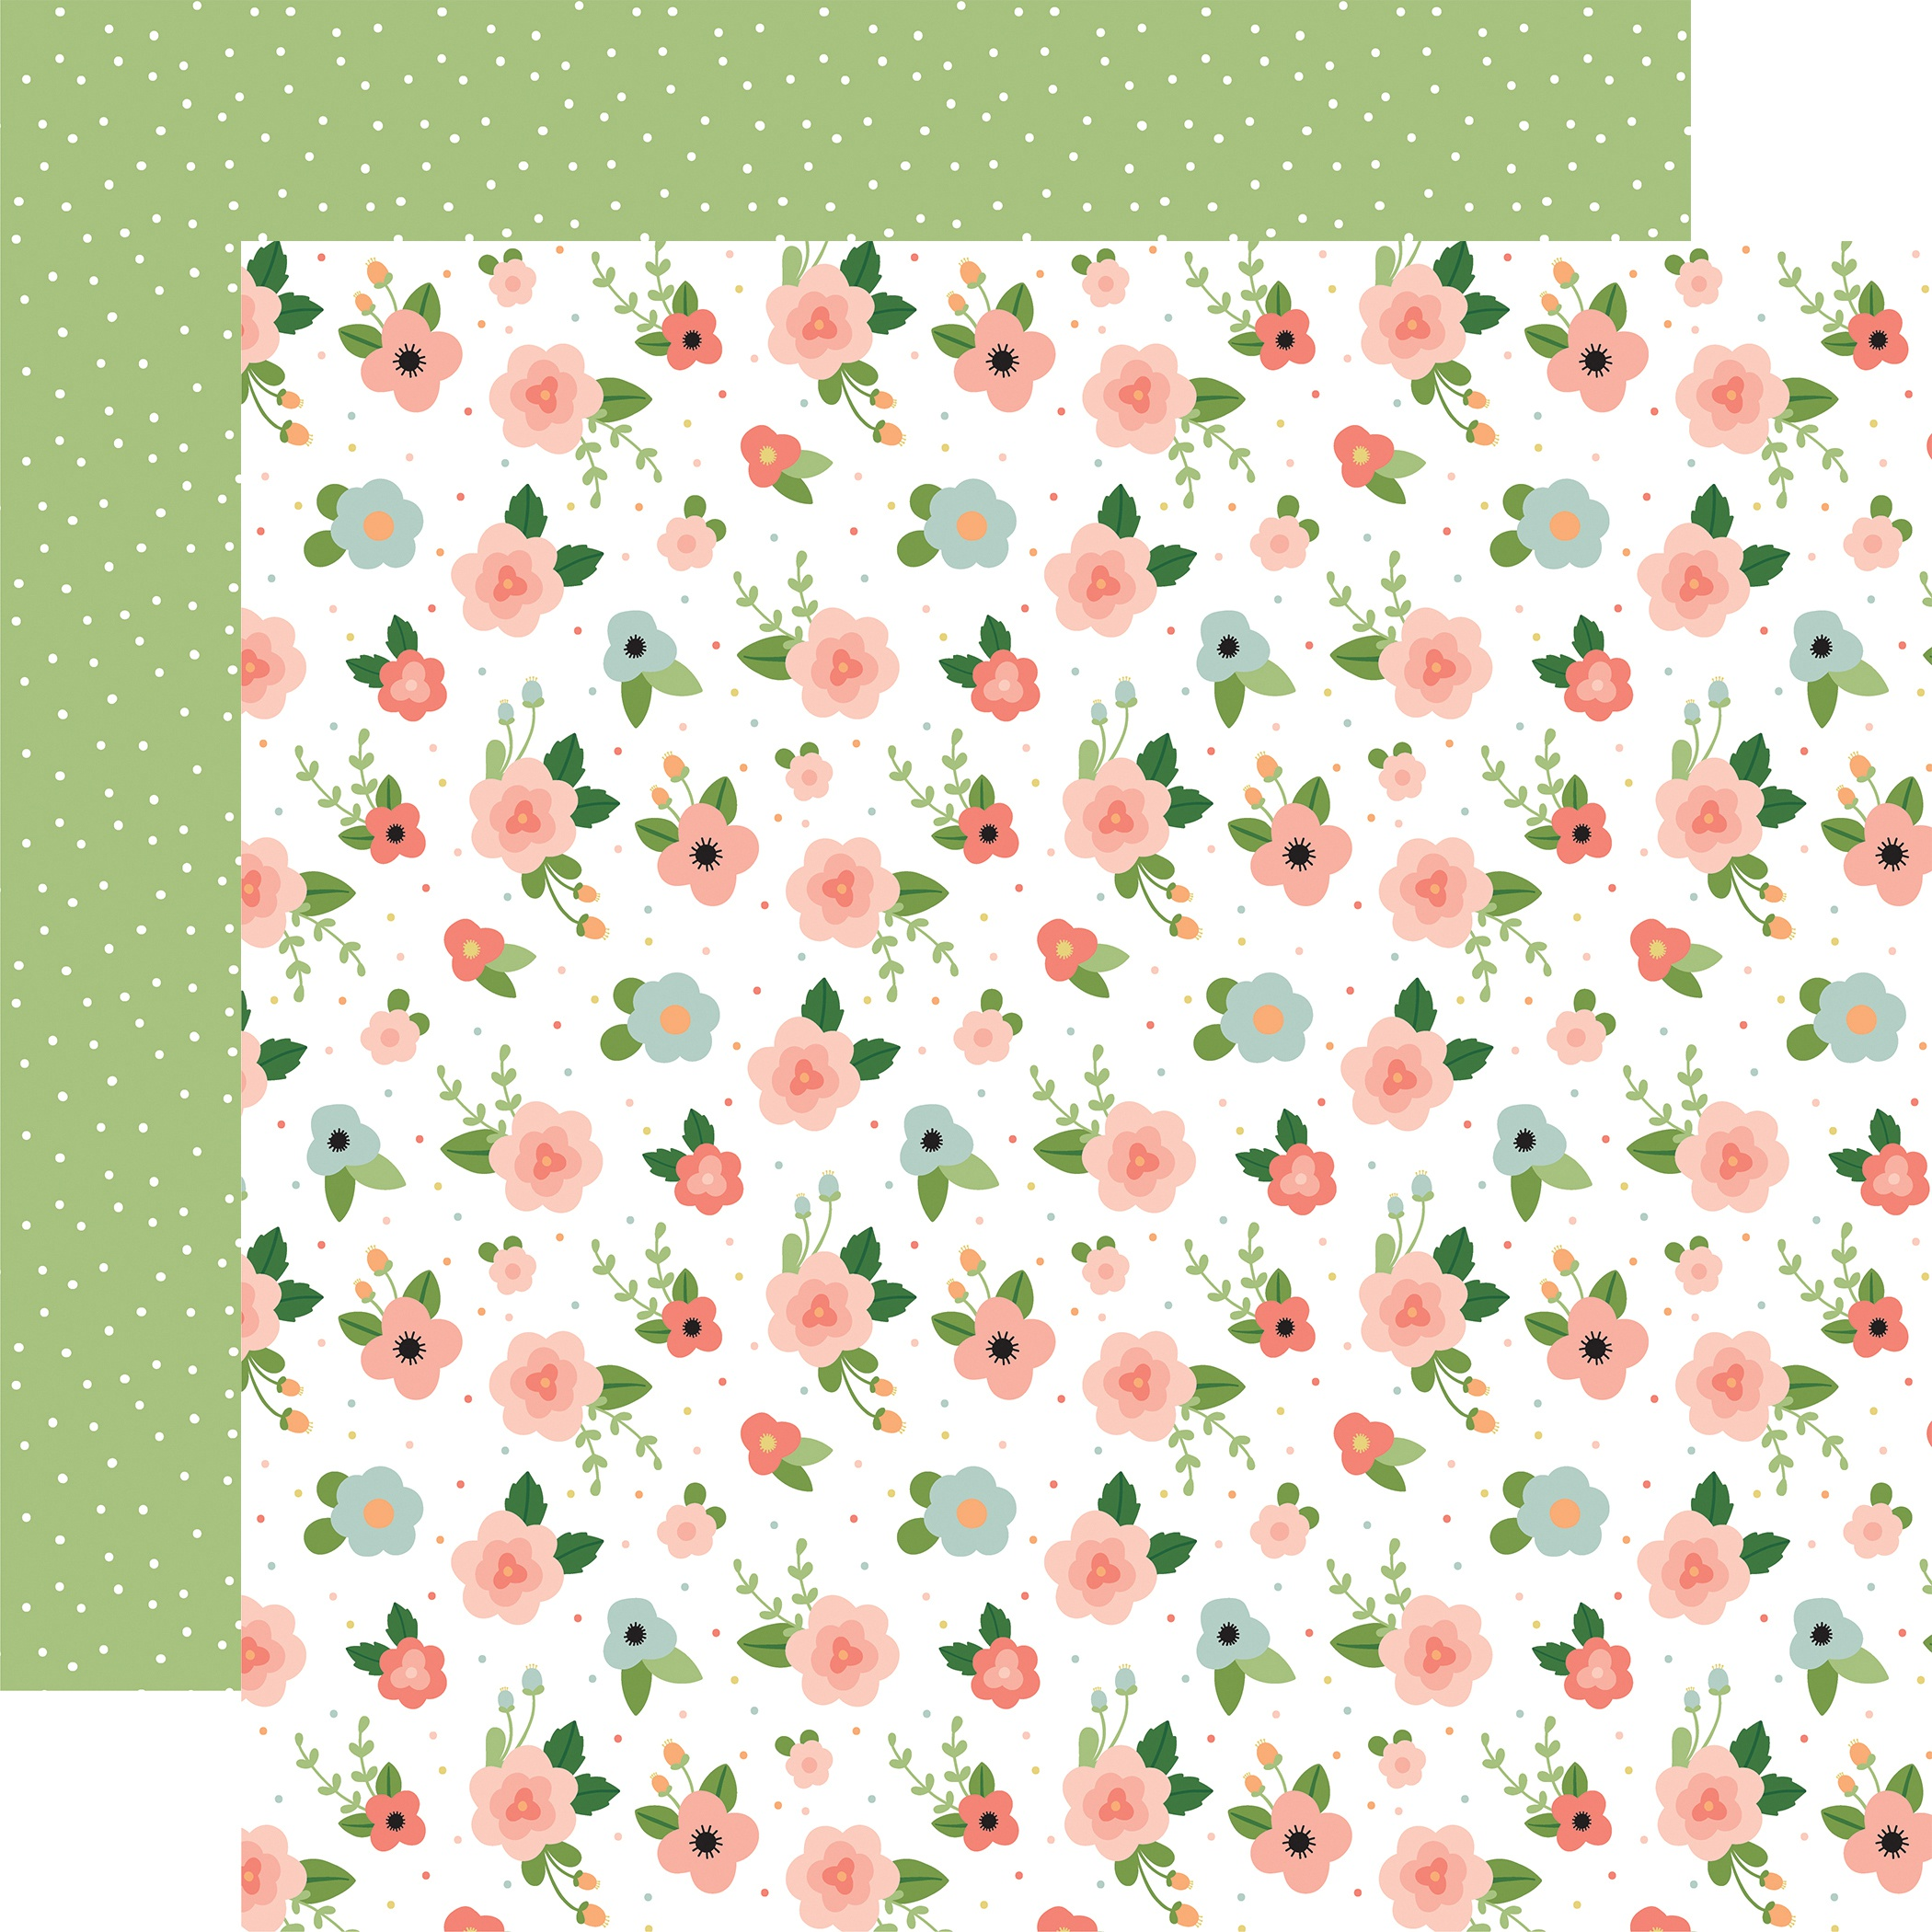 Echo Park Baby Girl - Newborn Floral - 12x12 Double-Sided Paper